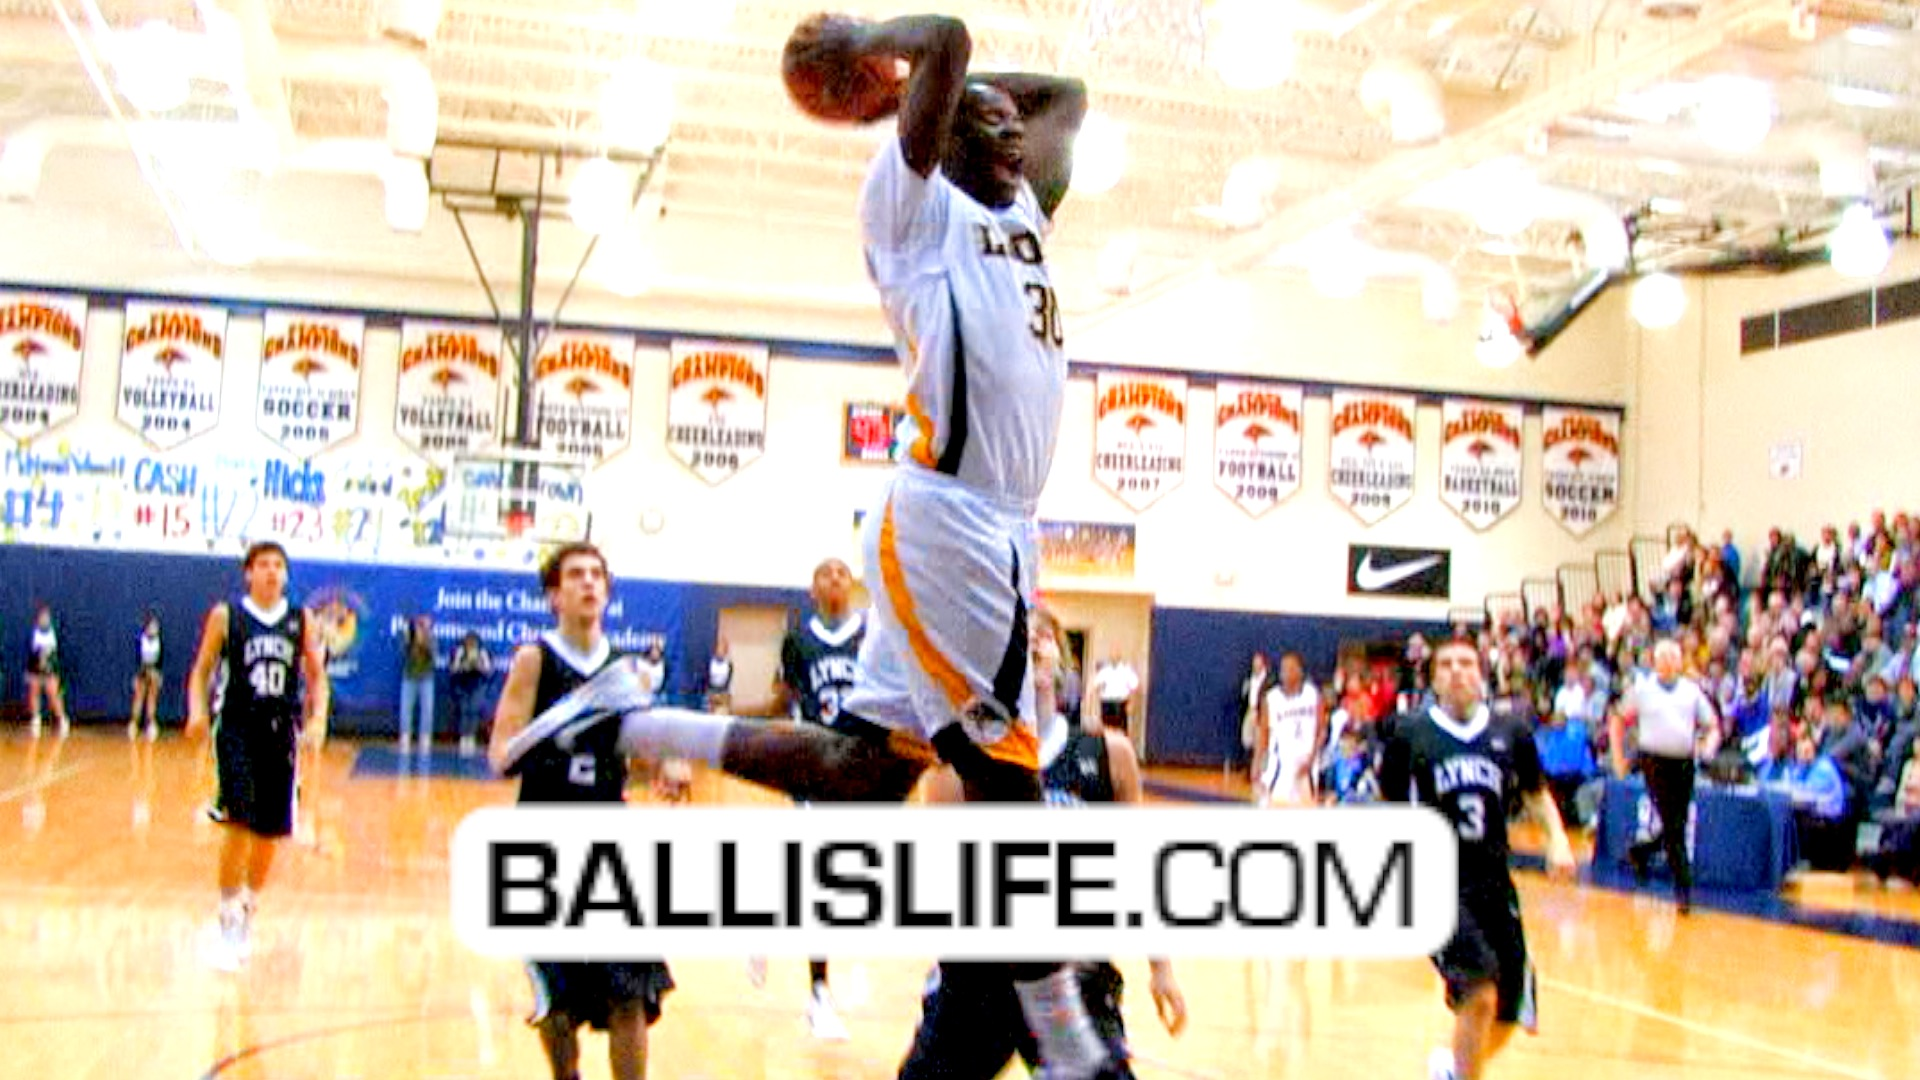 Ballislife | Julius Randle goes for 47 points in 3 quarters